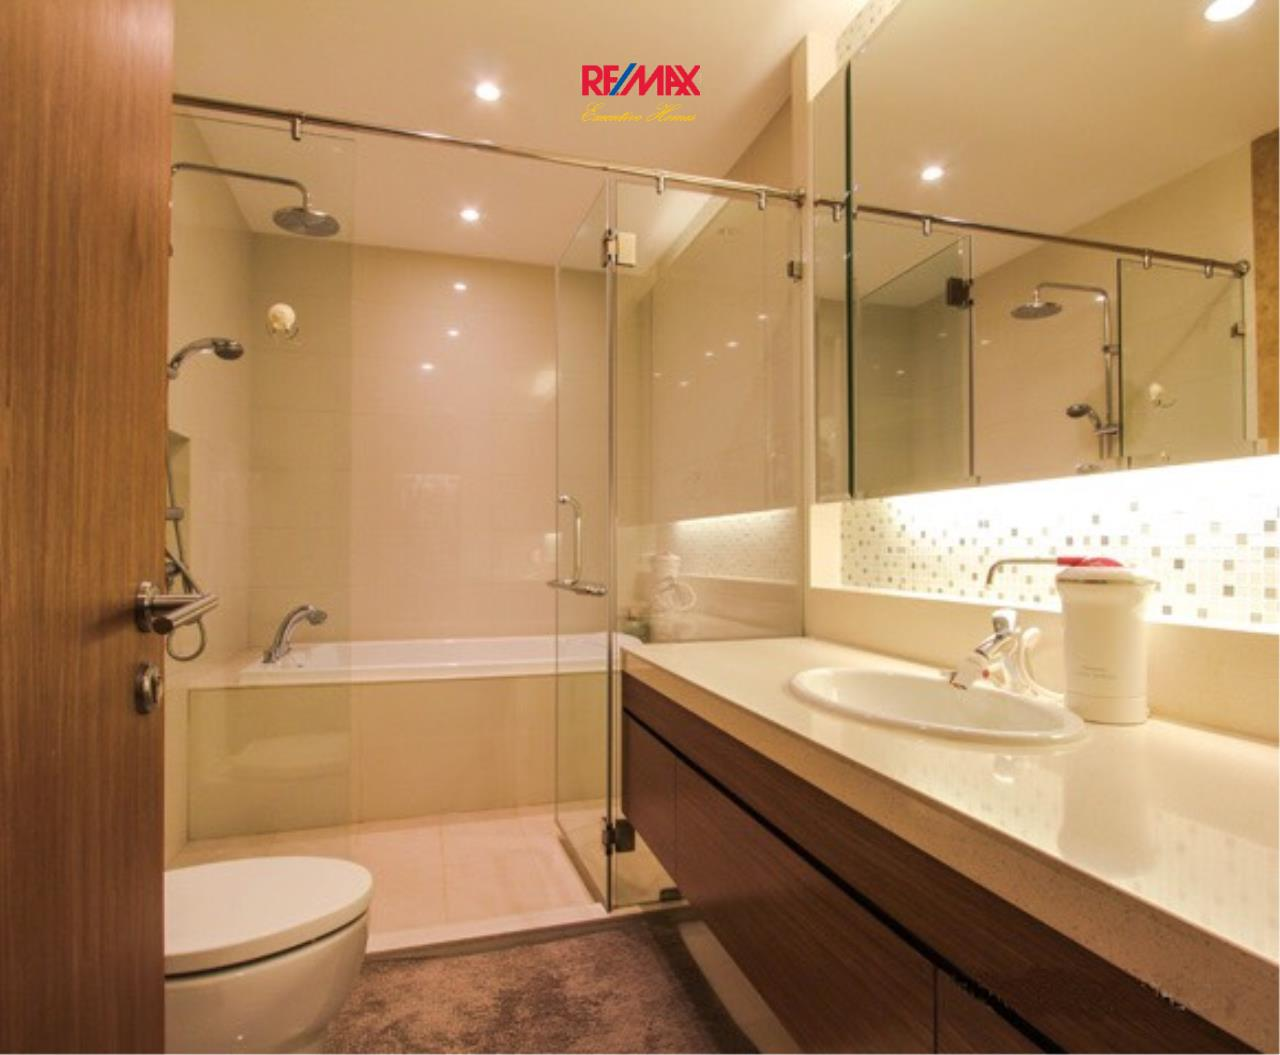 RE/MAX Executive Homes Agency's Stunning 3 Bedroom Duplex for Rent and Sale The Bright 24 16